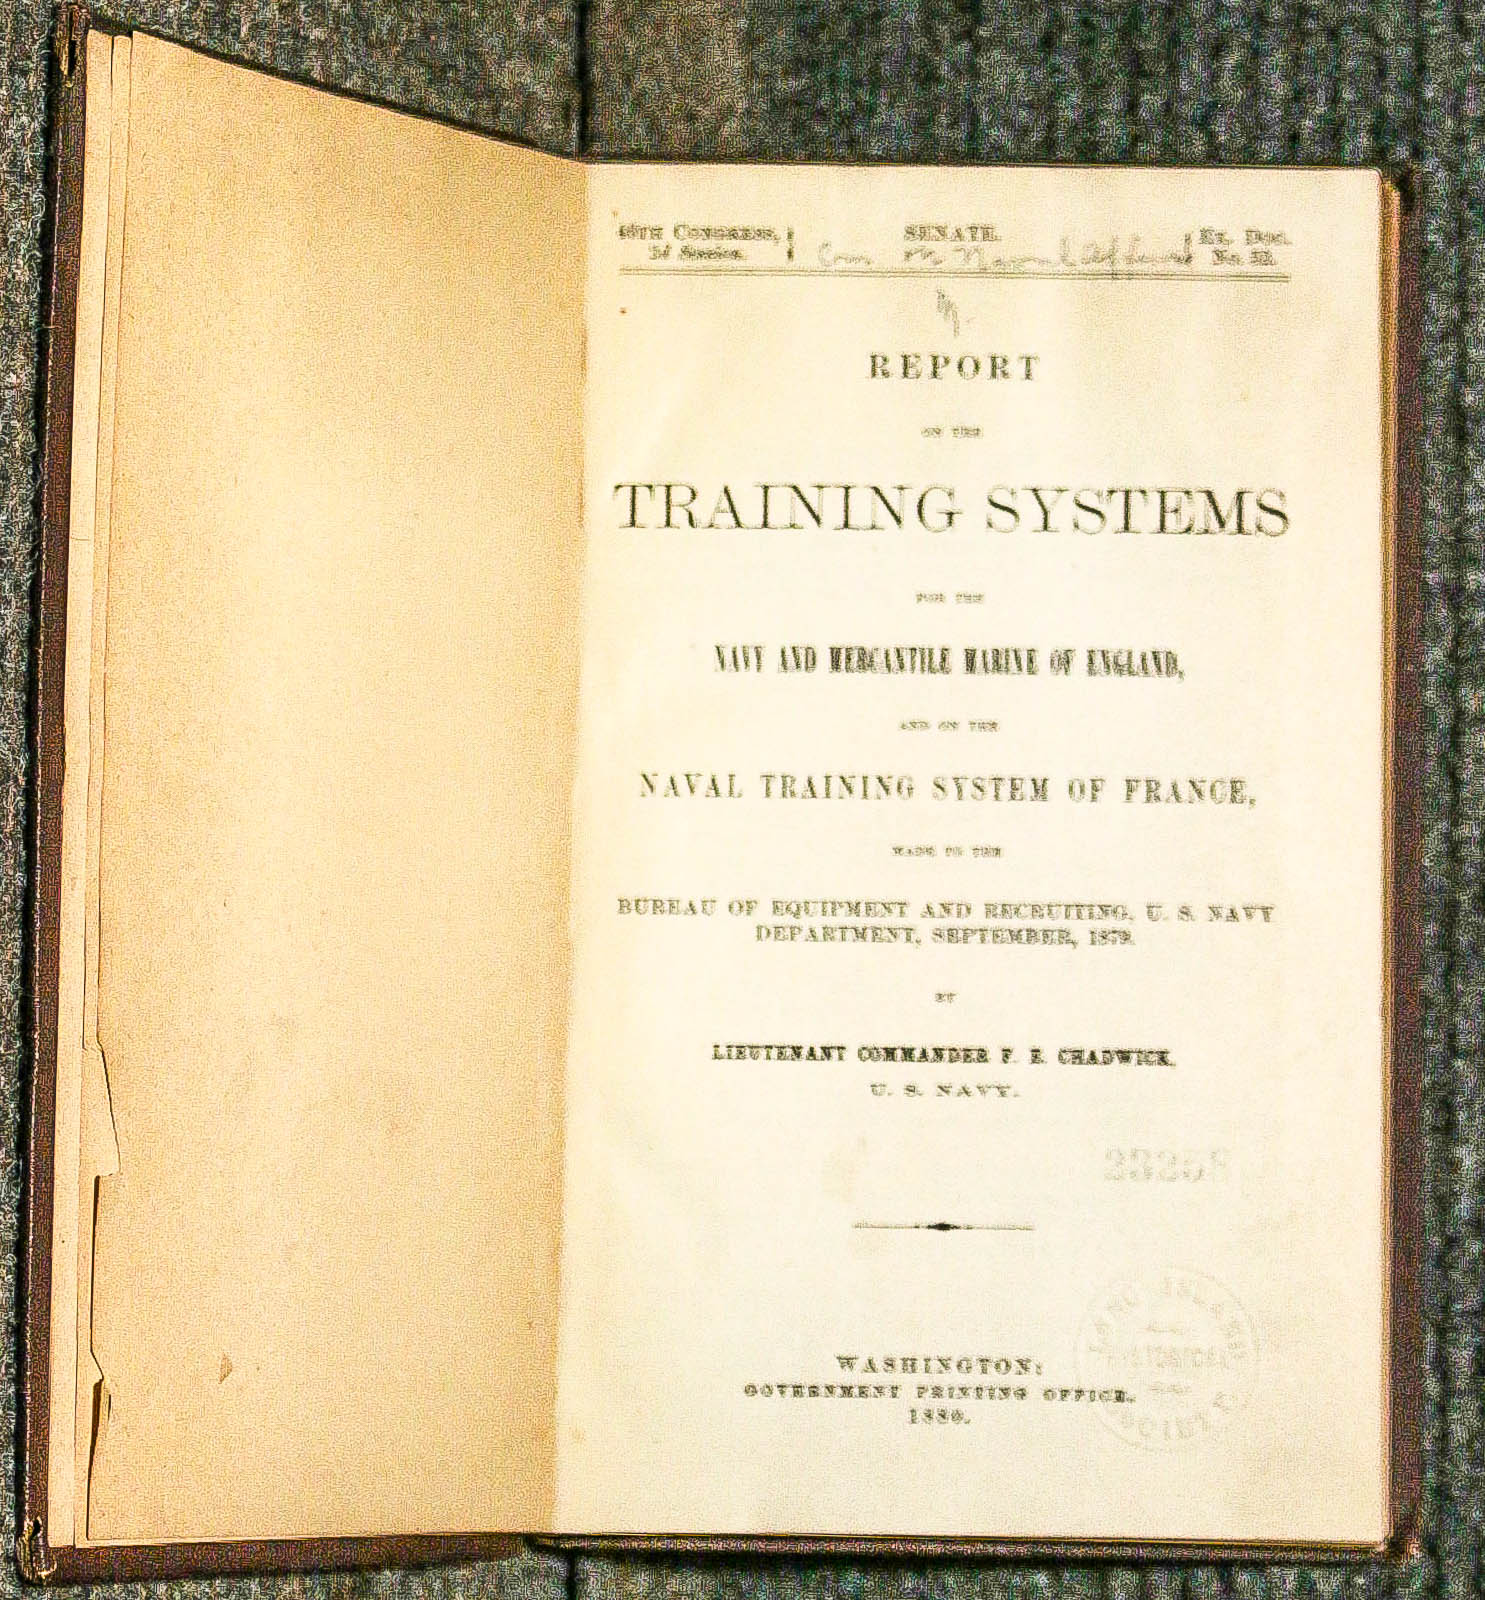 Image for REPORT ON THE TRAINING SYSTEMS FOR THE NAVY AND MERCANTILE MARINE OF ENGLAND AND OF THE NAVAL TRAINING SYSTEM OF FRANCE, MADE TO THE BUREAU OF EQUIPMENT AND RECRUITING, U.S. NAVY DEPARTMENT, SEPTEMBER, 1879